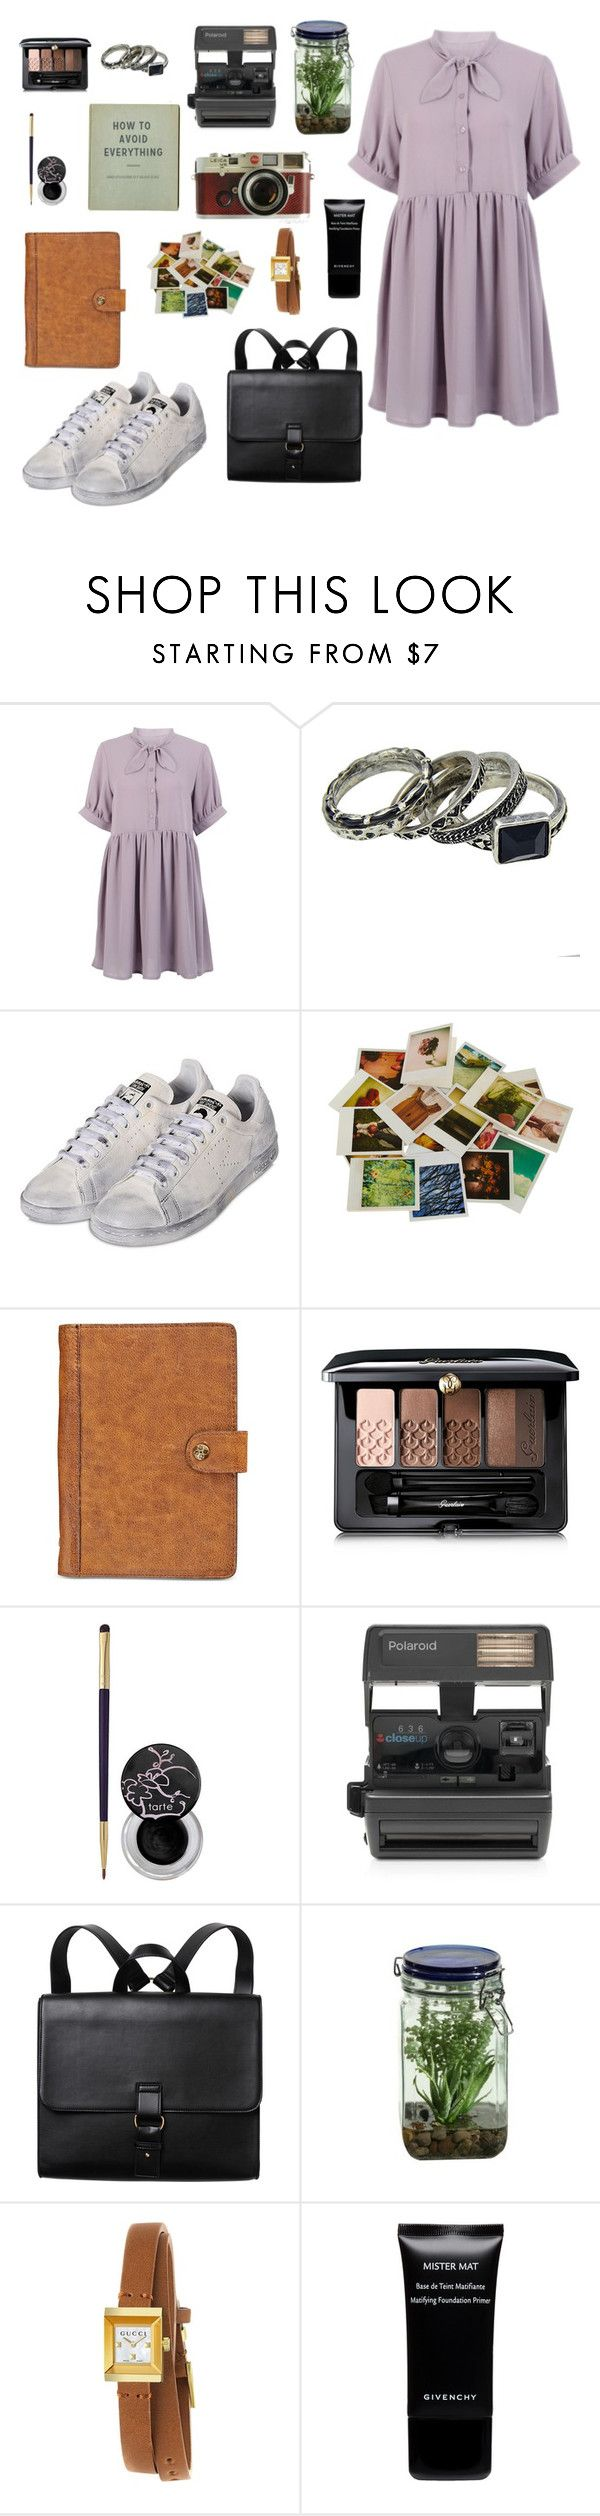 """""""nancy wheeler insp."""" by smileswithstyle ❤ liked on Polyvore featuring adidas, Chronicle Books, Leica, Patricia Nash, Guerlain, tarte, Impossible, Monki, Alöe and Gucci"""